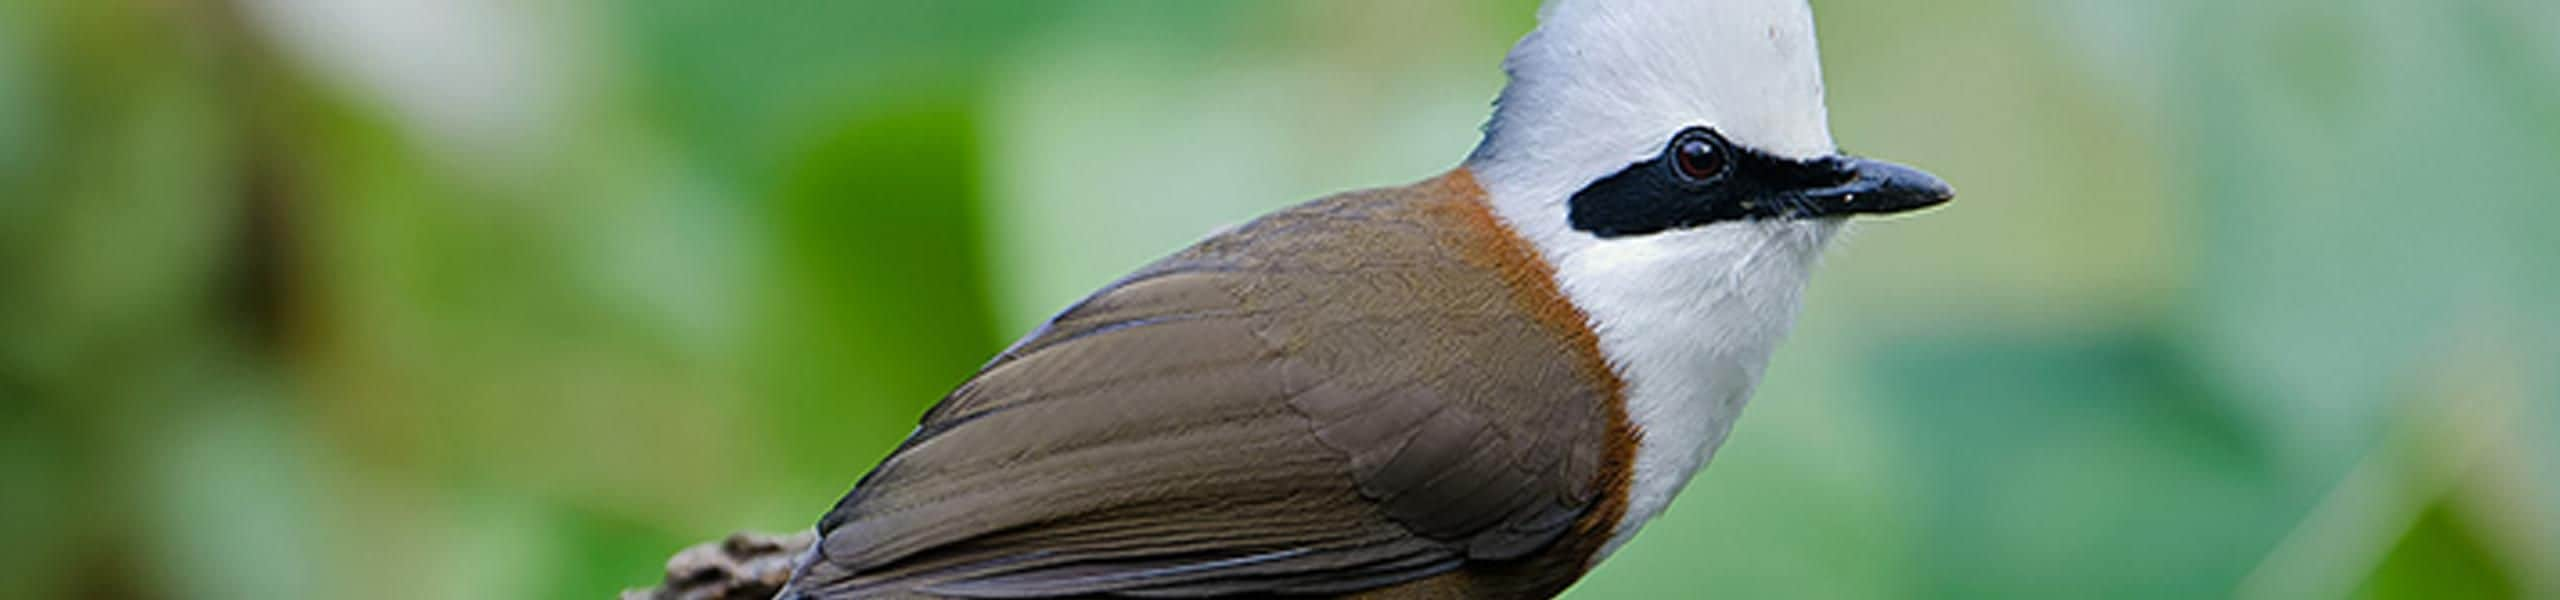 White- crested laughing thrush